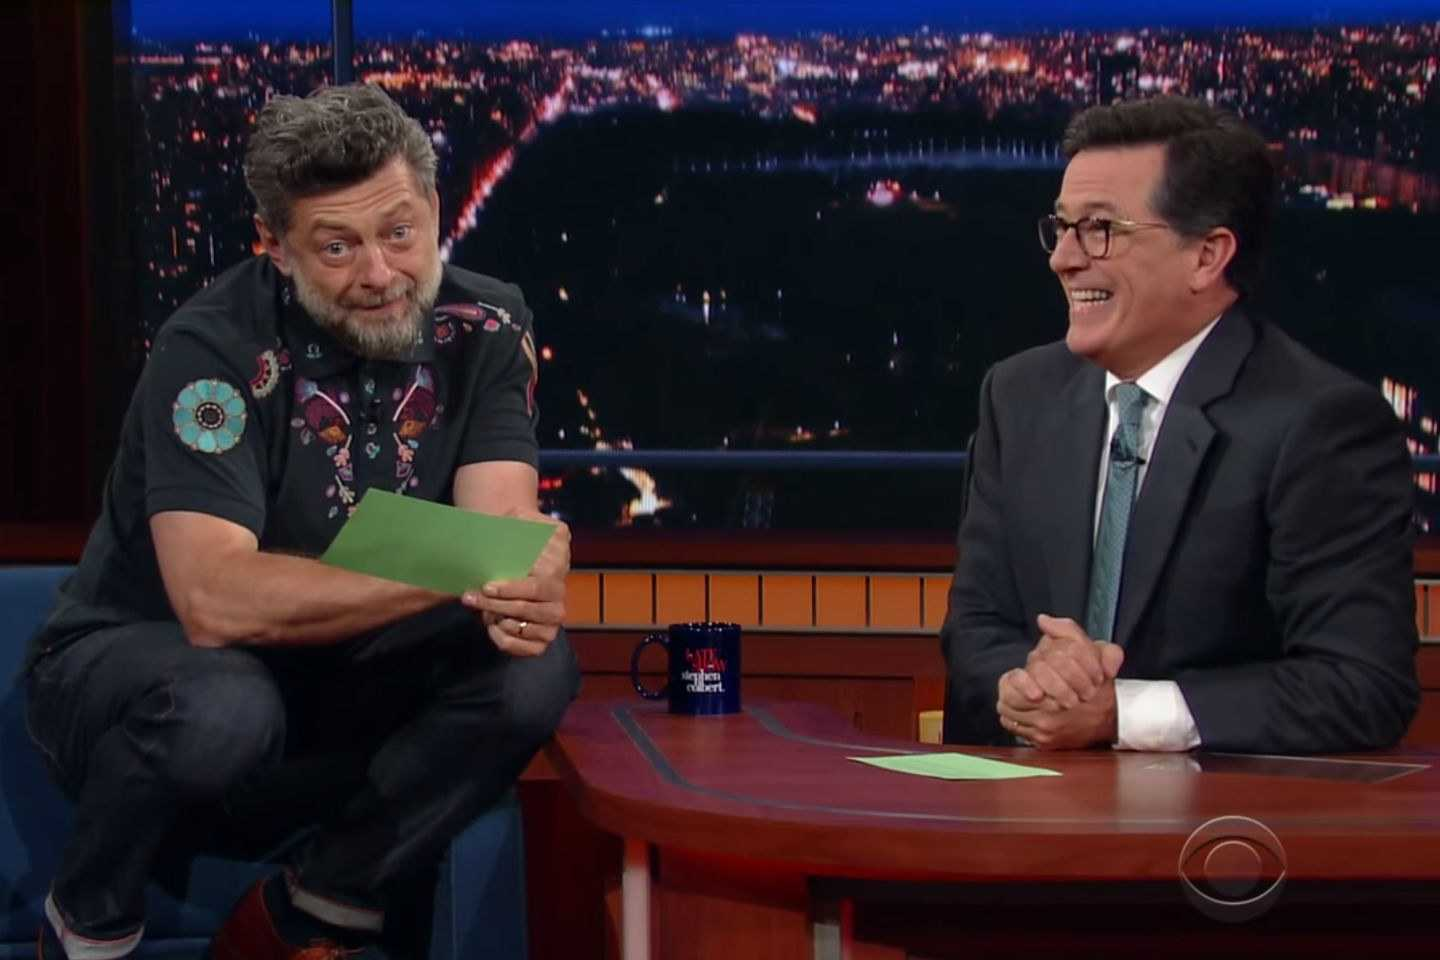 Andy Serkis Read Donald Trump's Tweets As Gollum On Stephen Colbert's 'Late Show' | Andy Serkis